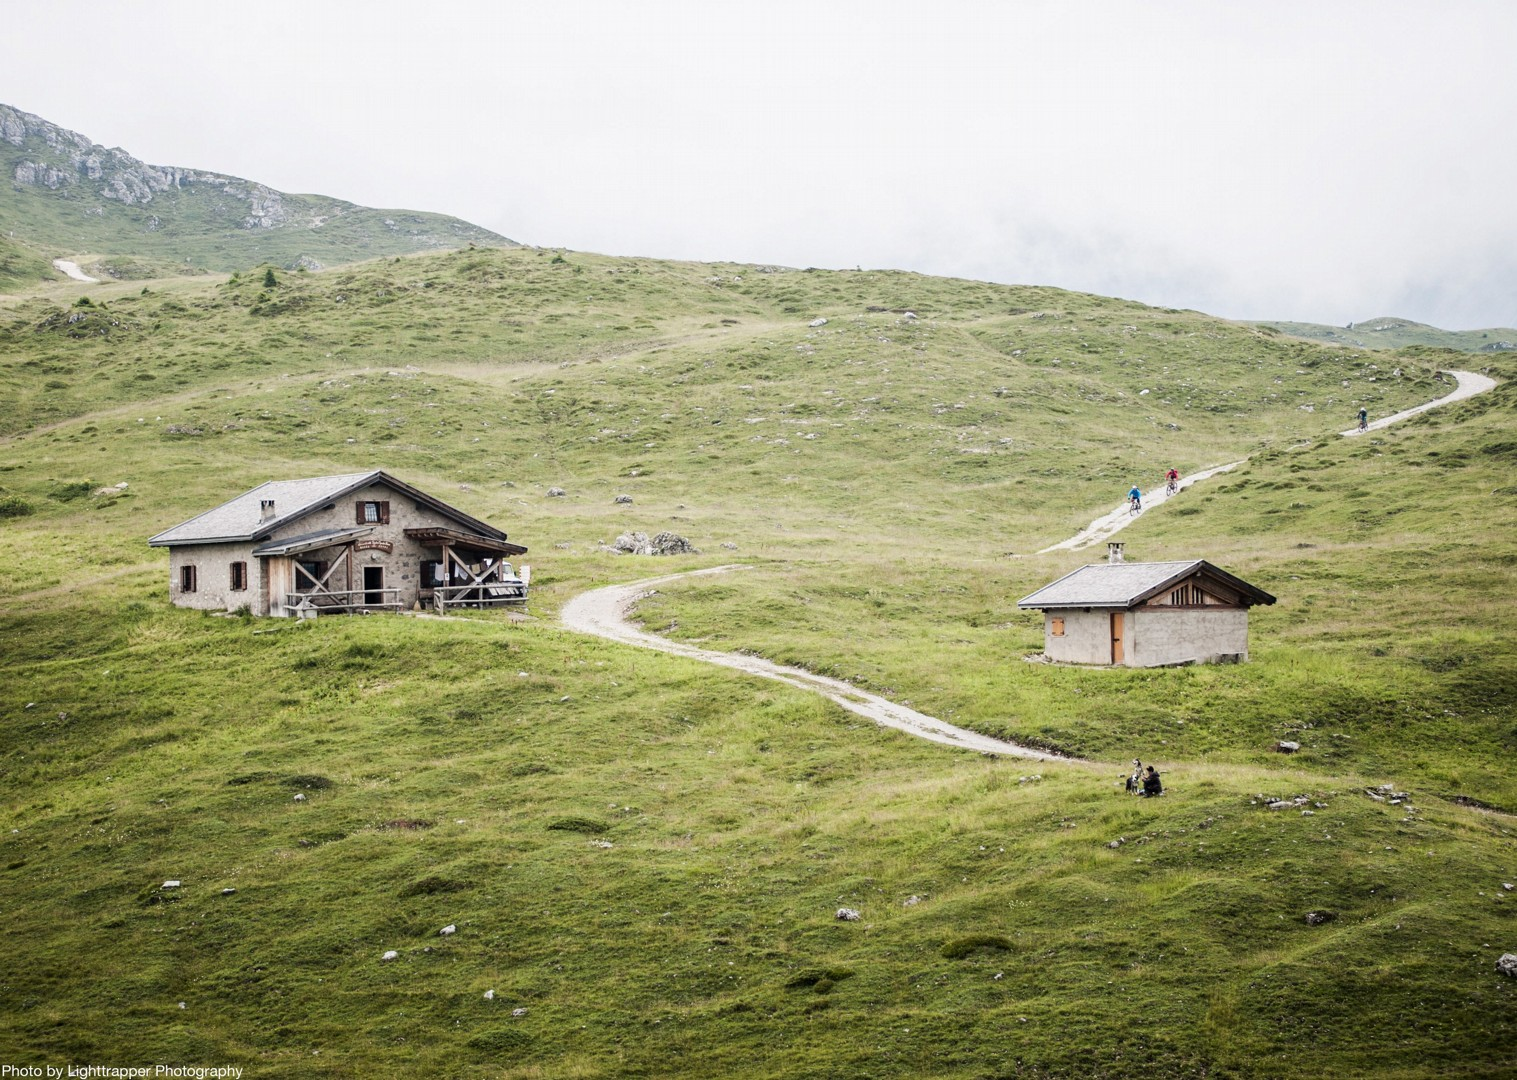 haute-route-of-the-assietta-mountain-bike-holiday-in-italy-and-france-alpine-adventure.jpg - Italy and France - Alpine Adventure - Guided Mountain Bike Holiday - Mountain Biking